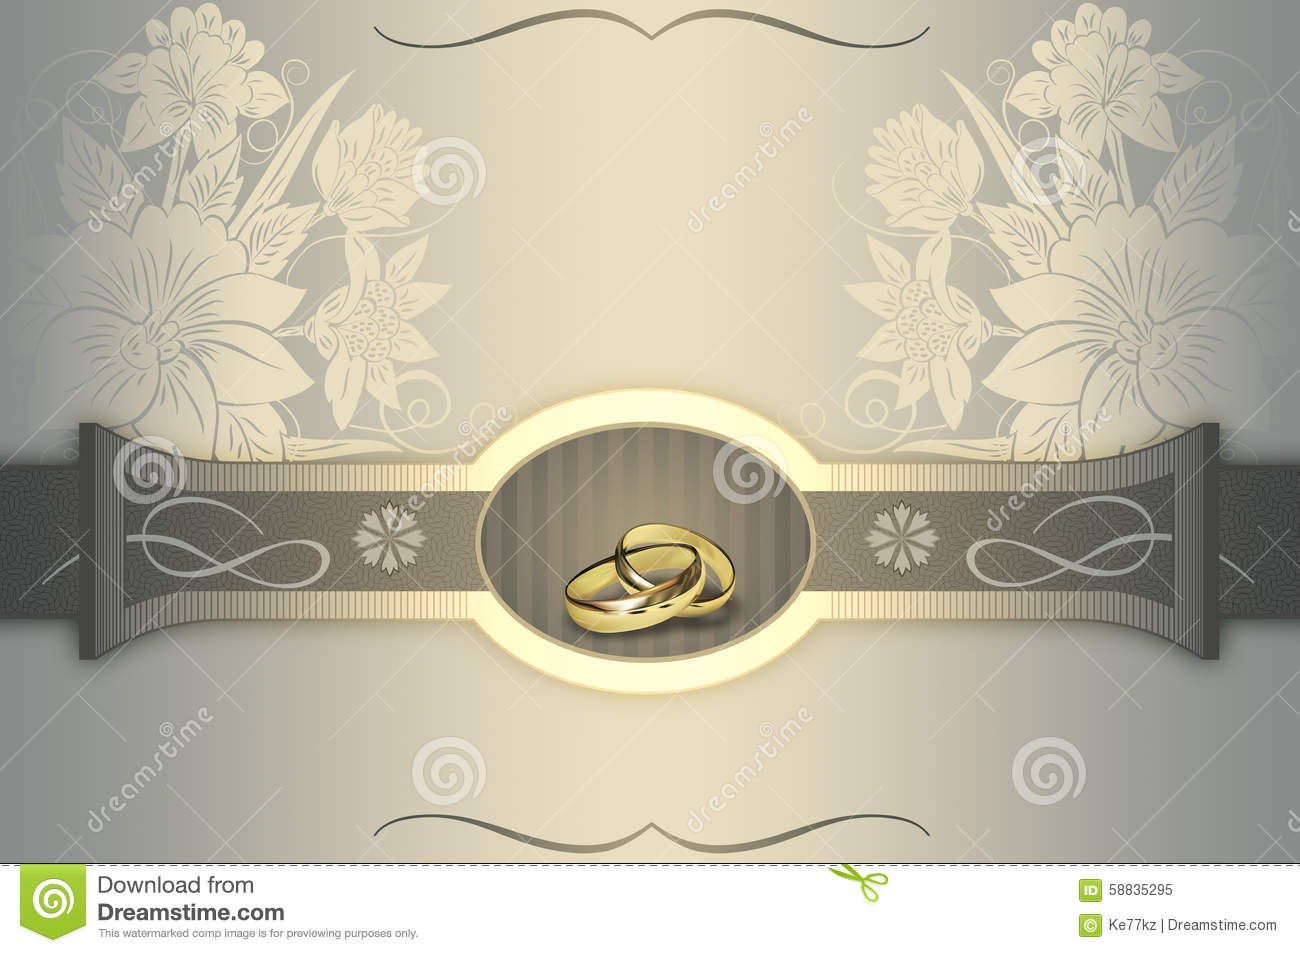 Wedding Invitation Card Design. Stock Illustration - Illustration of ...